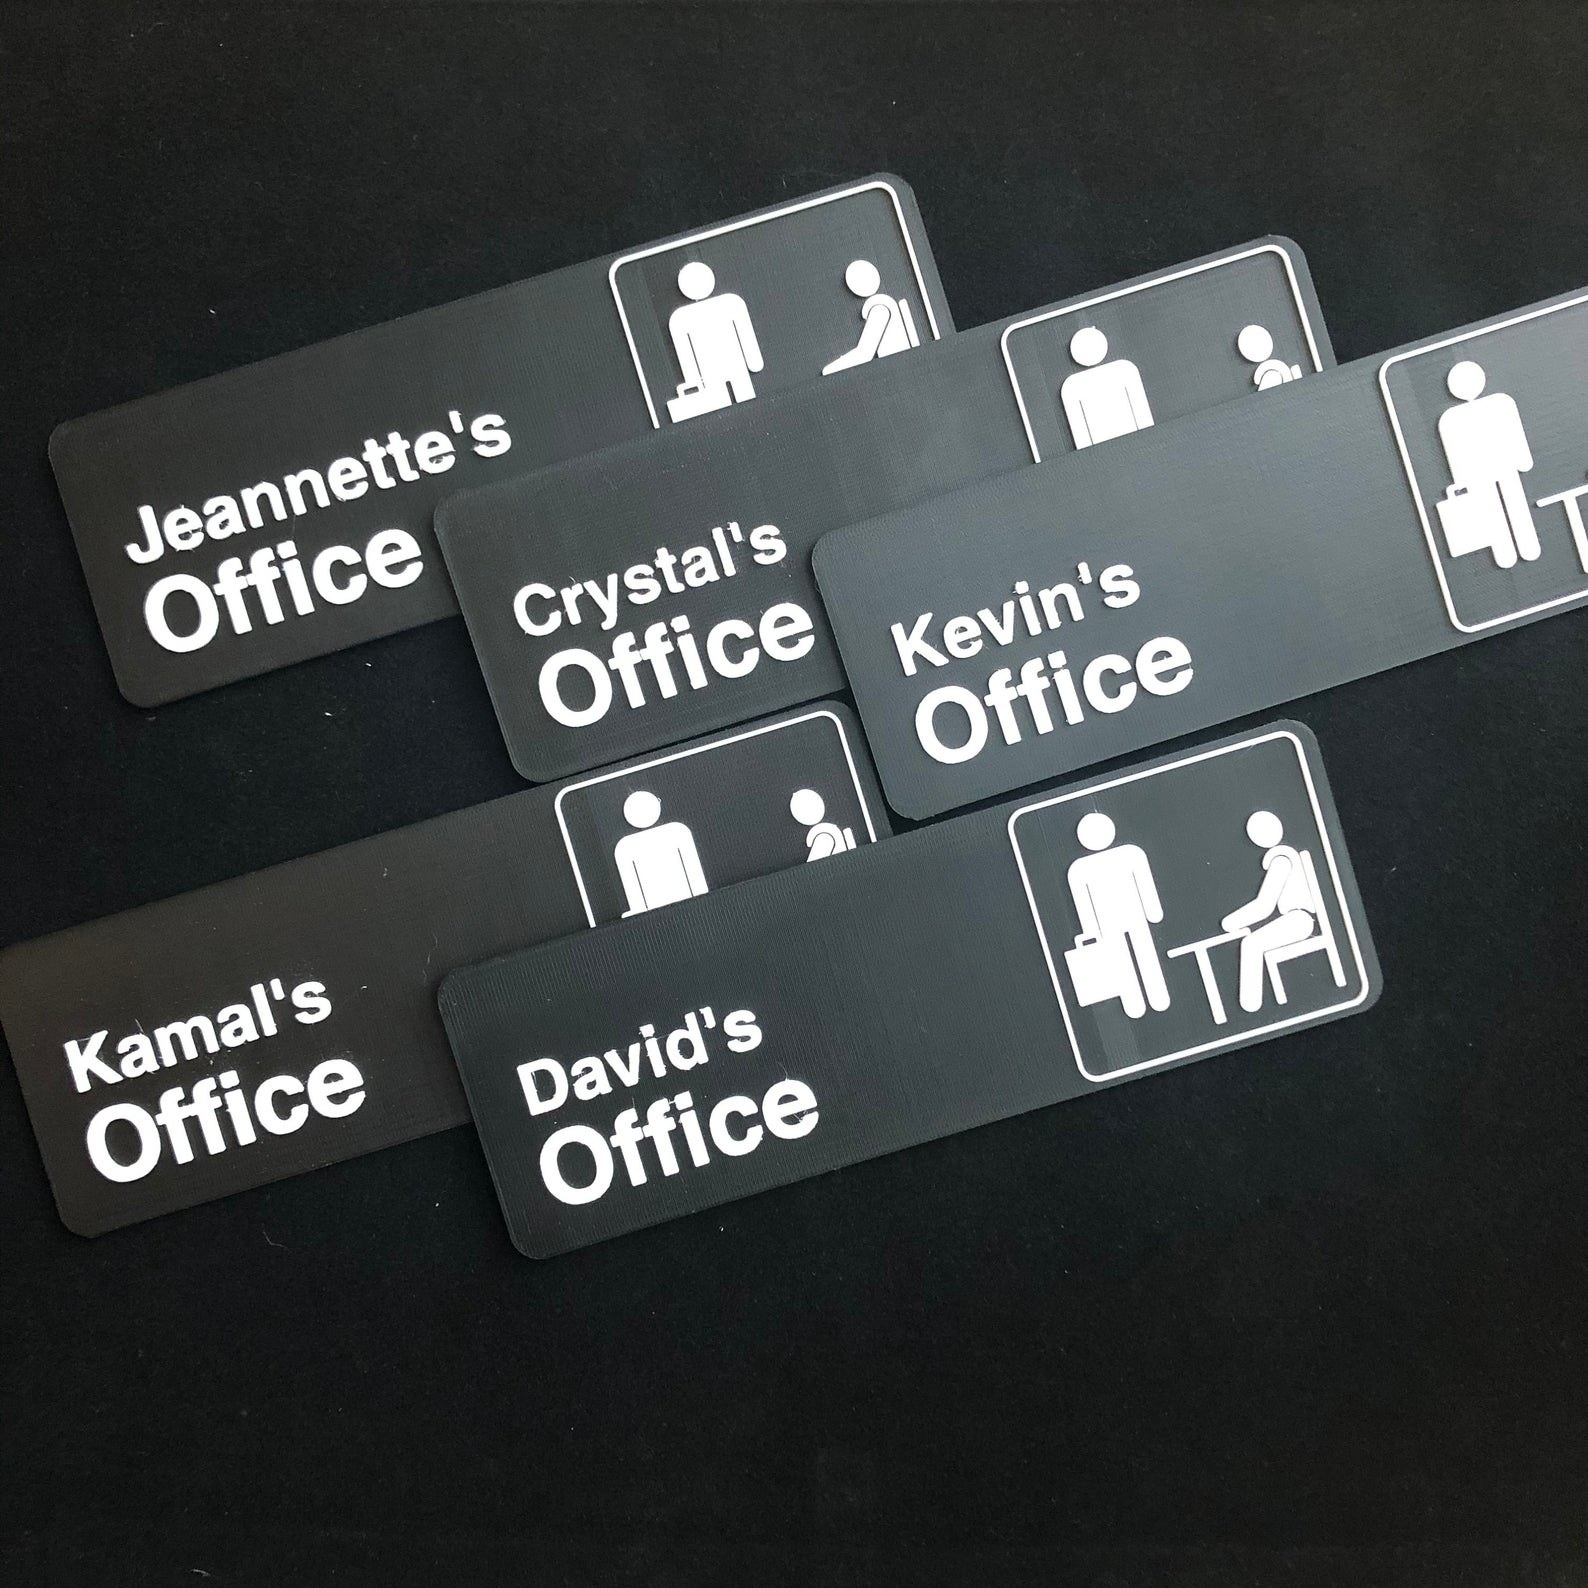 The Office door signs with people's names on them like Kamal's Office and Crystal's Office